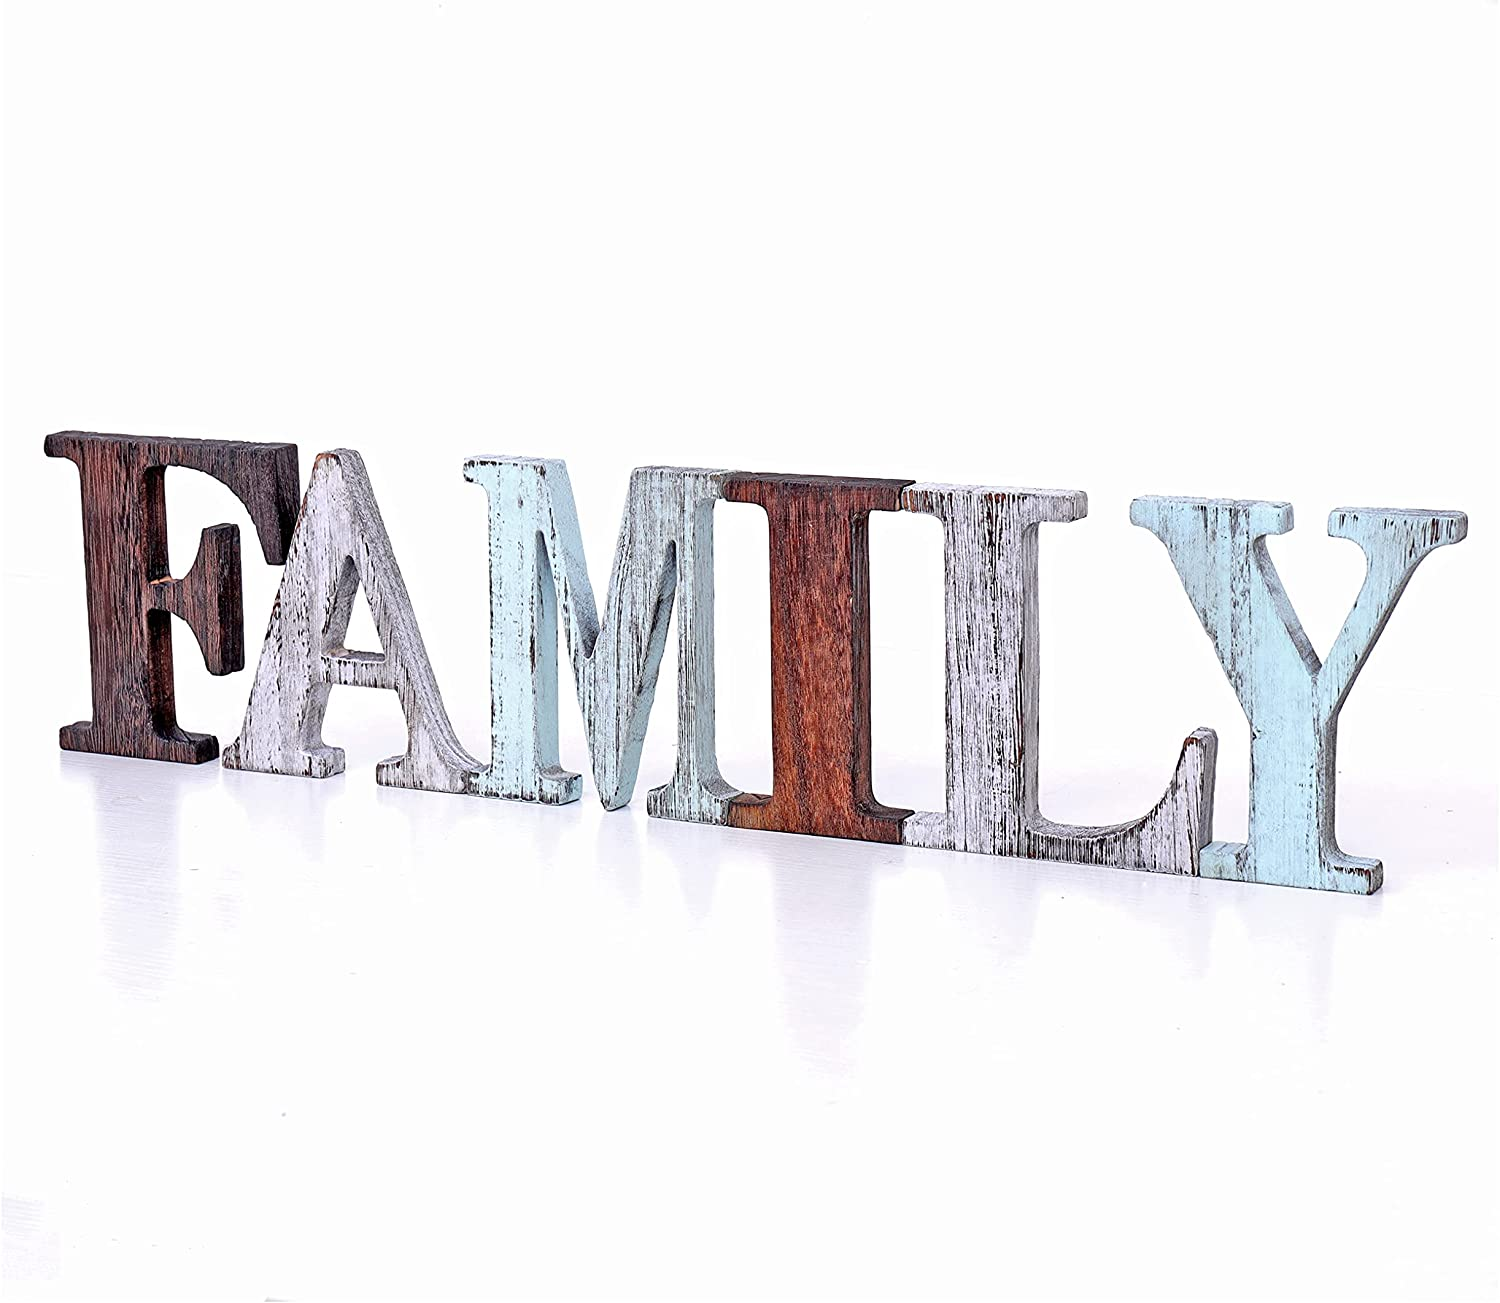 U/D Rustic Wood Family Sign Decorative Wooden Block Word Signs Desktop Sign,Wooden Blocks Rustic Letters Cutout Farmhouse Home Table Centerpiece Decor, Multicolor Freestanding Signs(Family)